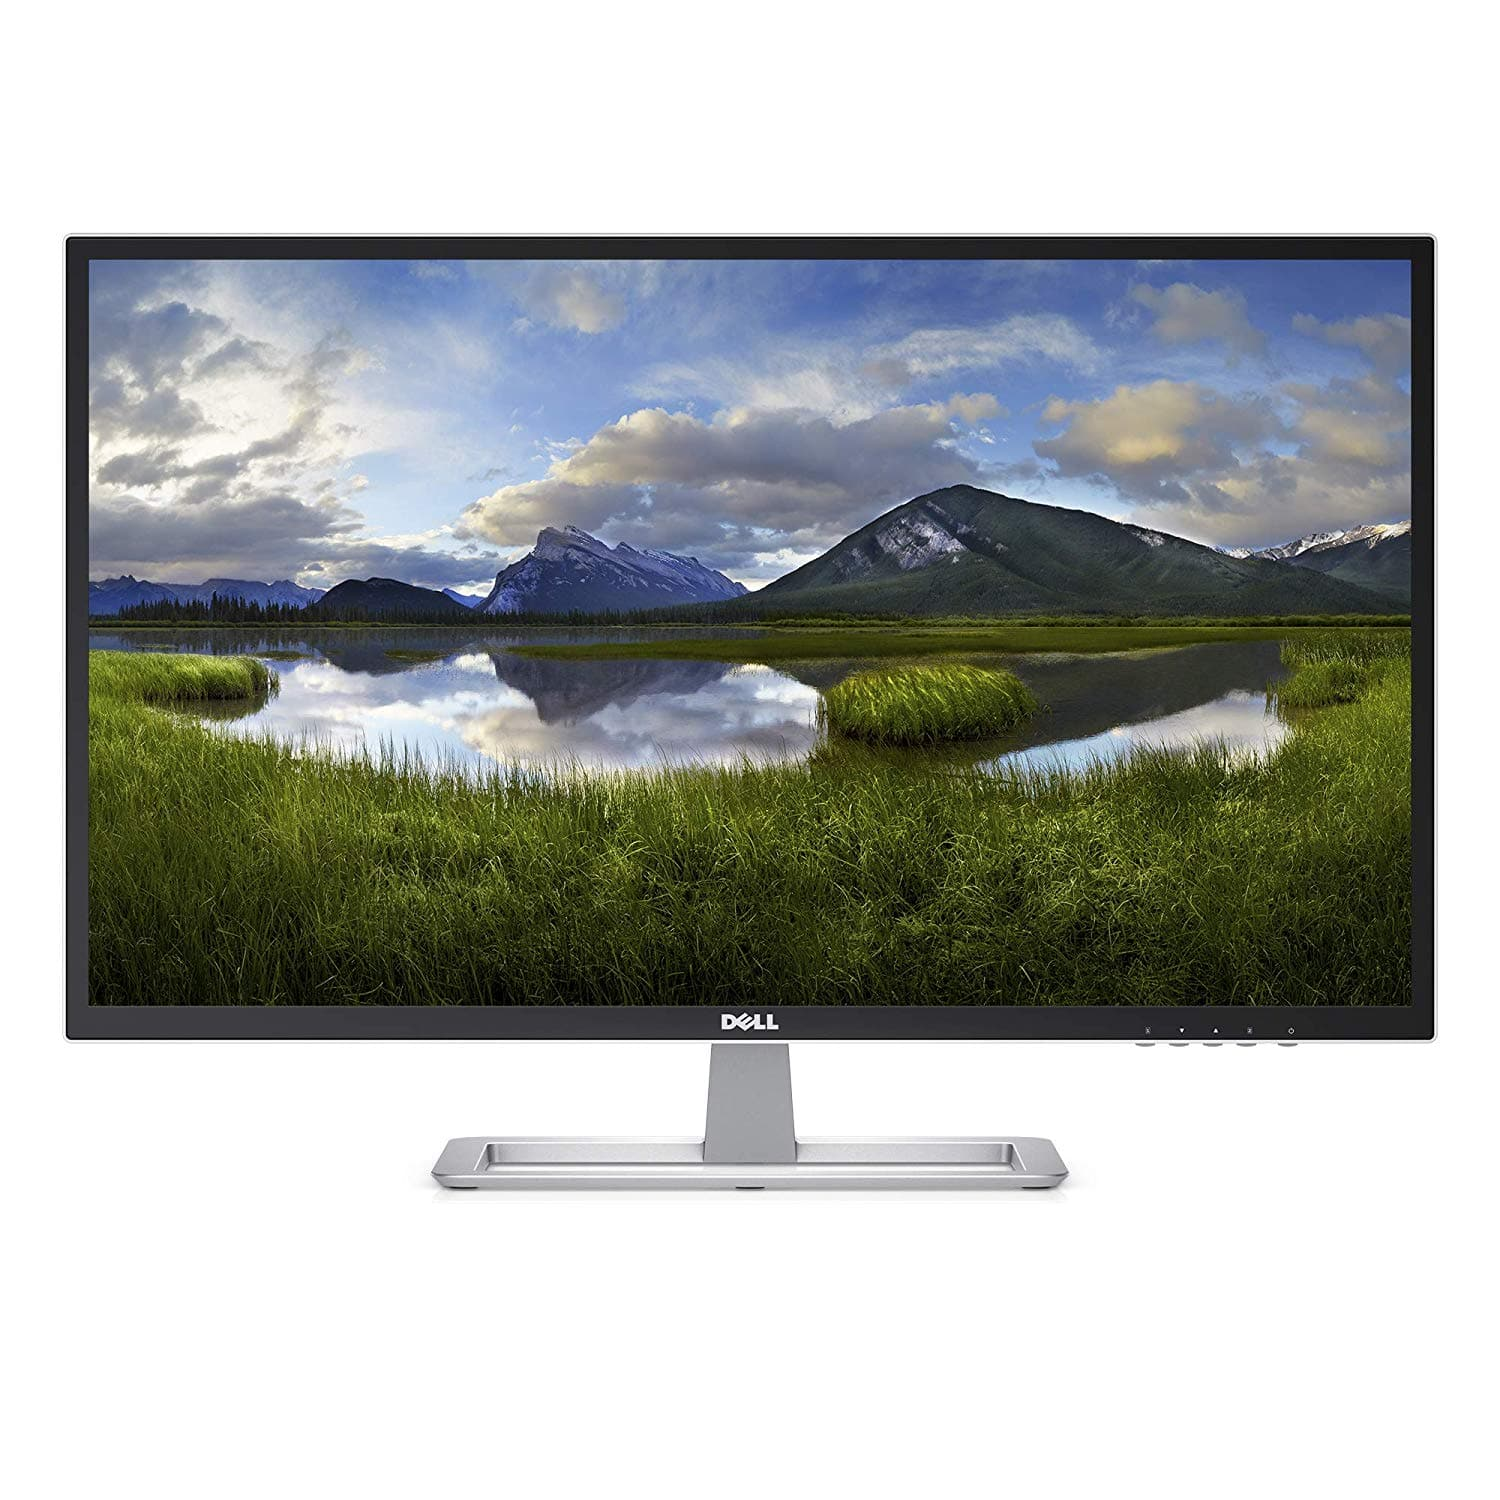 """31.5"""" Dell D3218HN 1080p IPS LED Monitor $109.99 + Free Shipping @ Staples"""